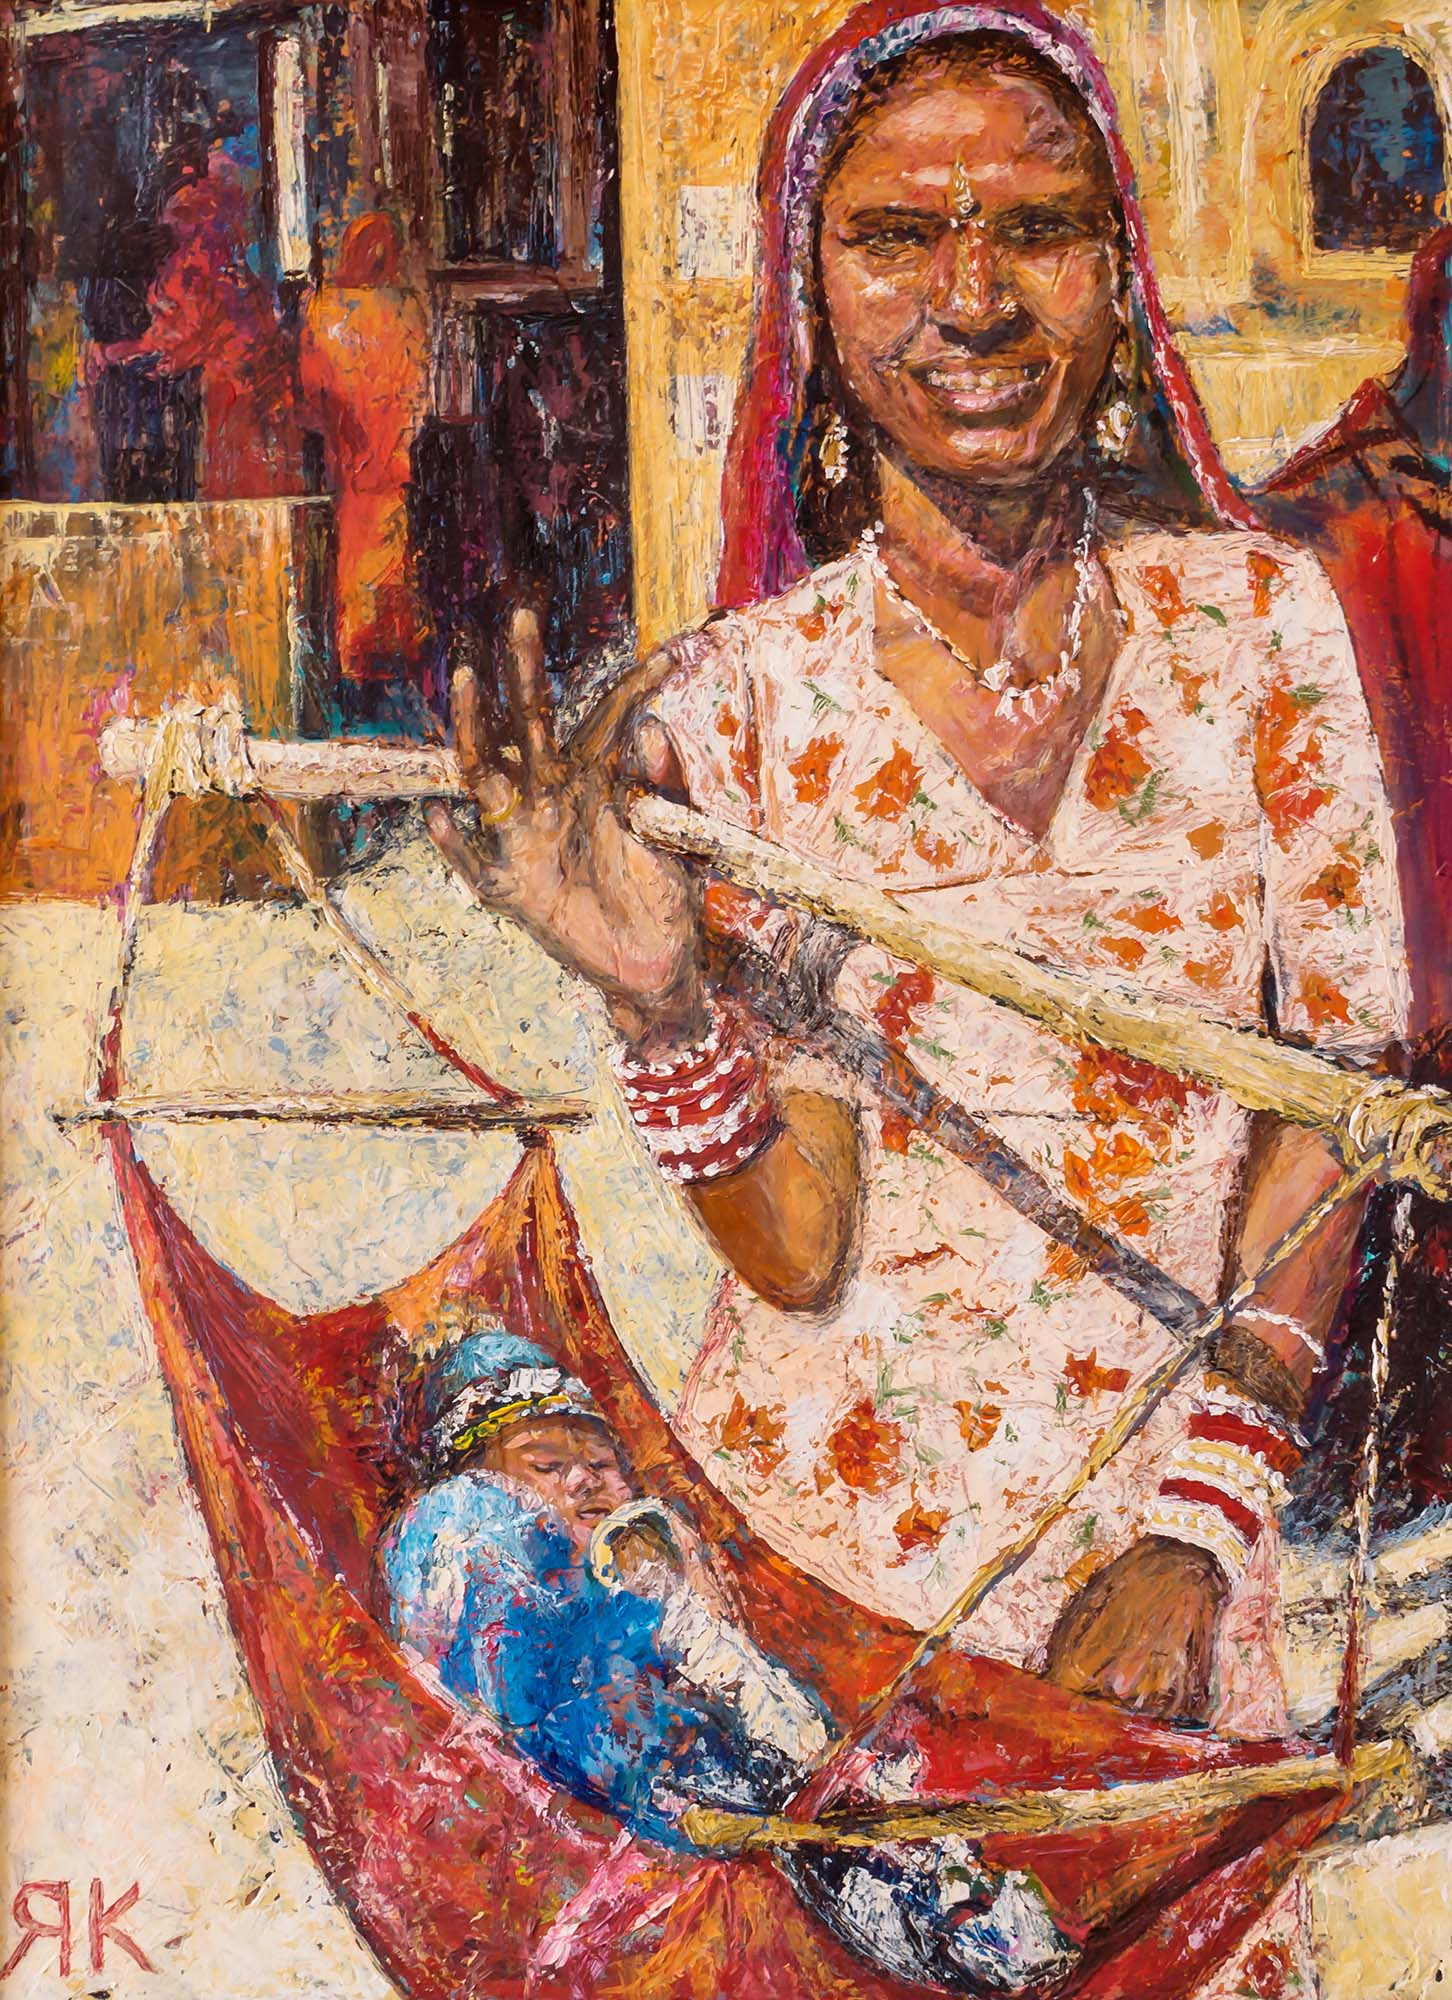 Indian woman holding a baby by Ria Kieboom